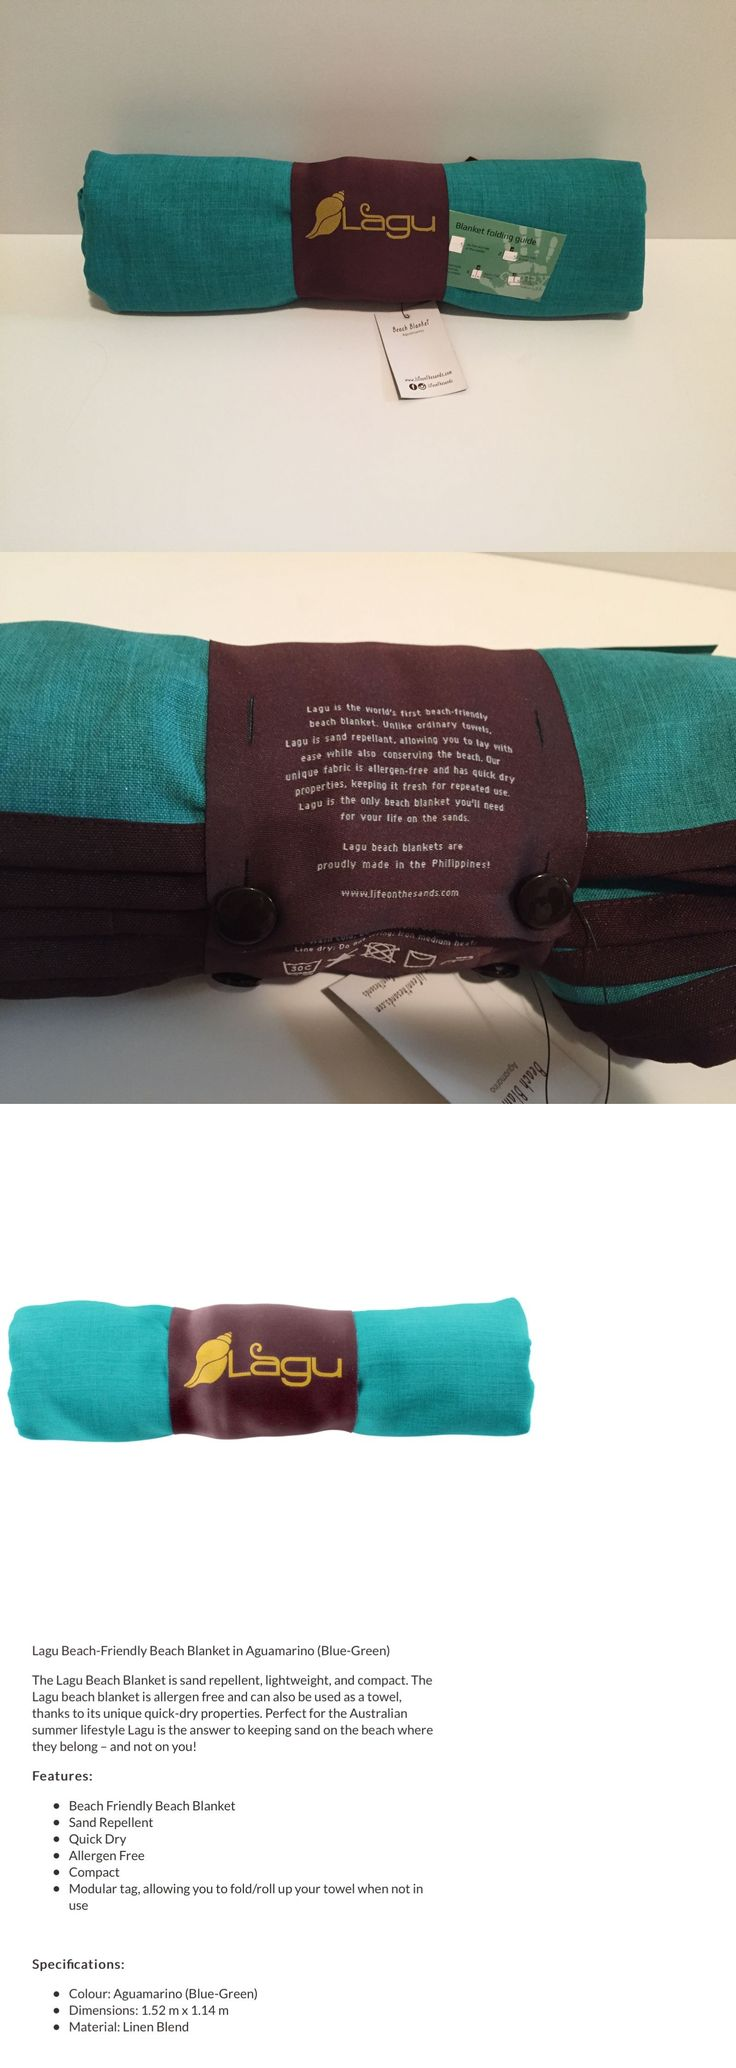 Blankets and Liners 111261: Lagu - Sand-Repellent Beach Blanket Aguamarino (Teal) Regular (45 X 60) -> BUY IT NOW ONLY: $39.99 on eBay!